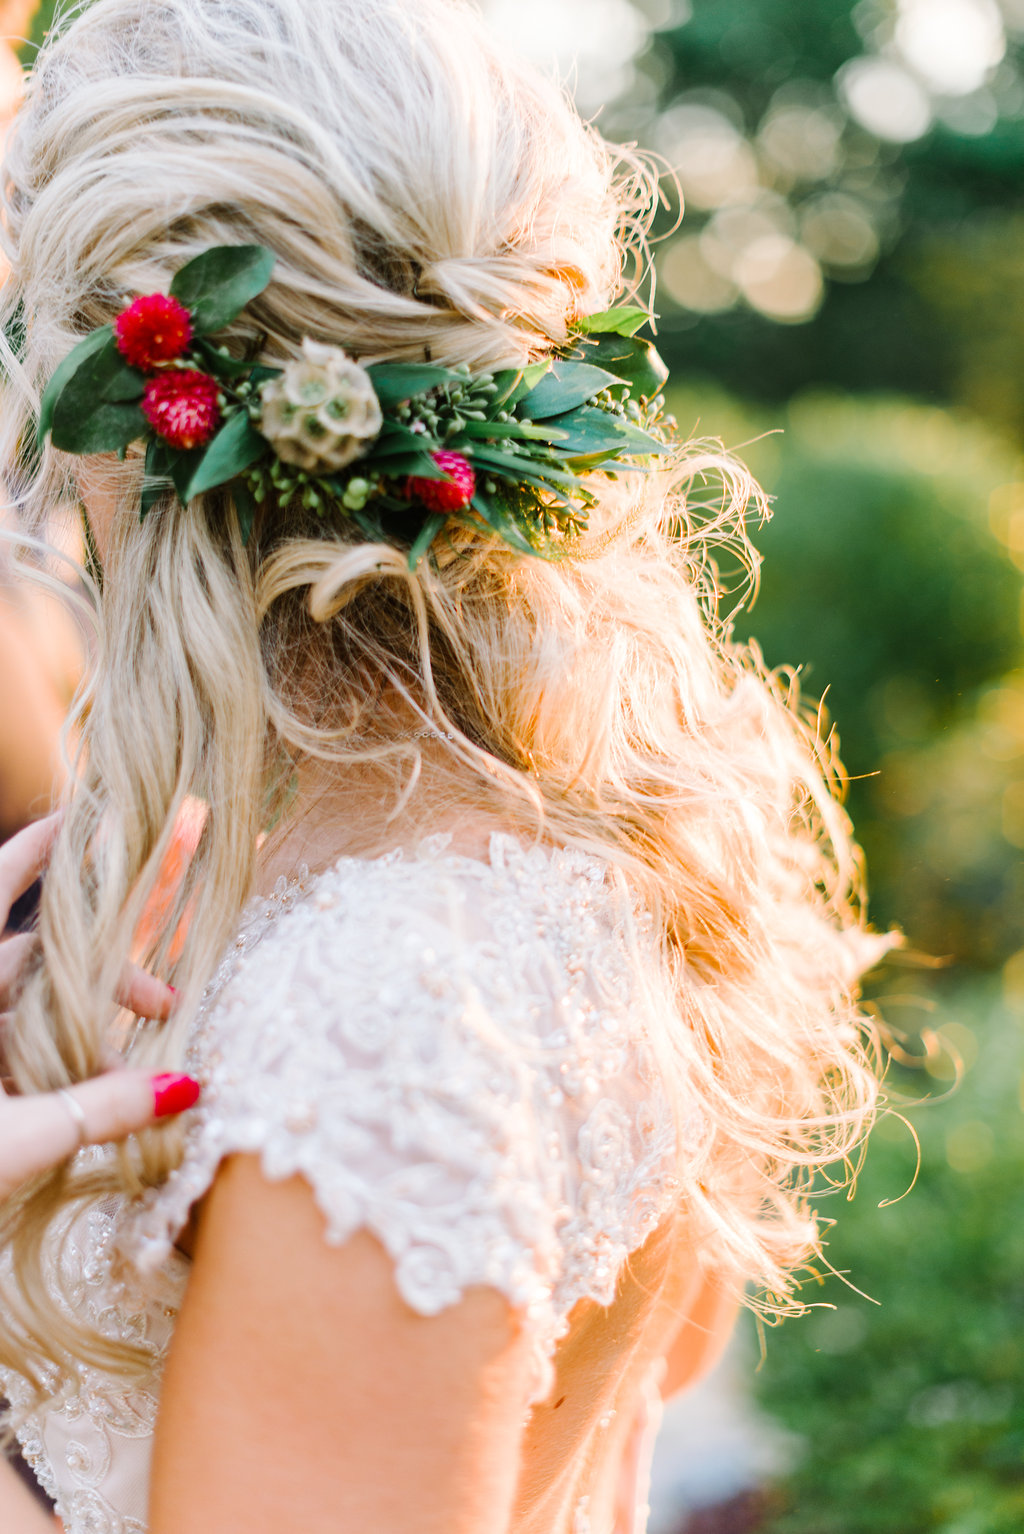 bridal hair inspiration - photo by Cathrine Taylor Photography http://ruffledblog.com/colorful-alabama-wedding-with-desert-accents